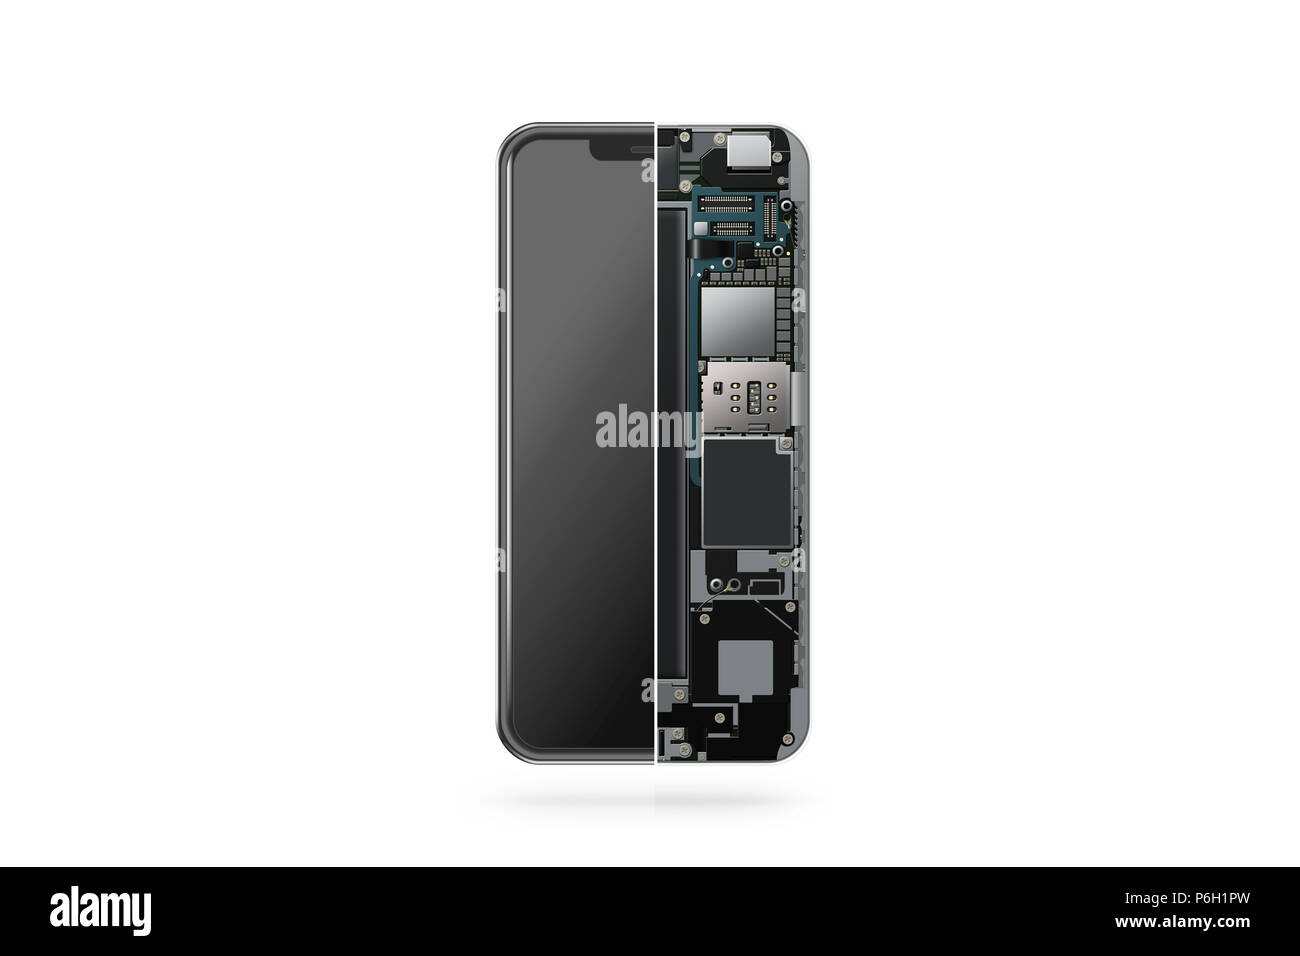 New modern smart phone internal isolated, chip, motherboard, processor, cpu and details, 3d rendering. Smart phone component repair. Cellphone chipset inside. Telephone scecification disassembled - Stock Image